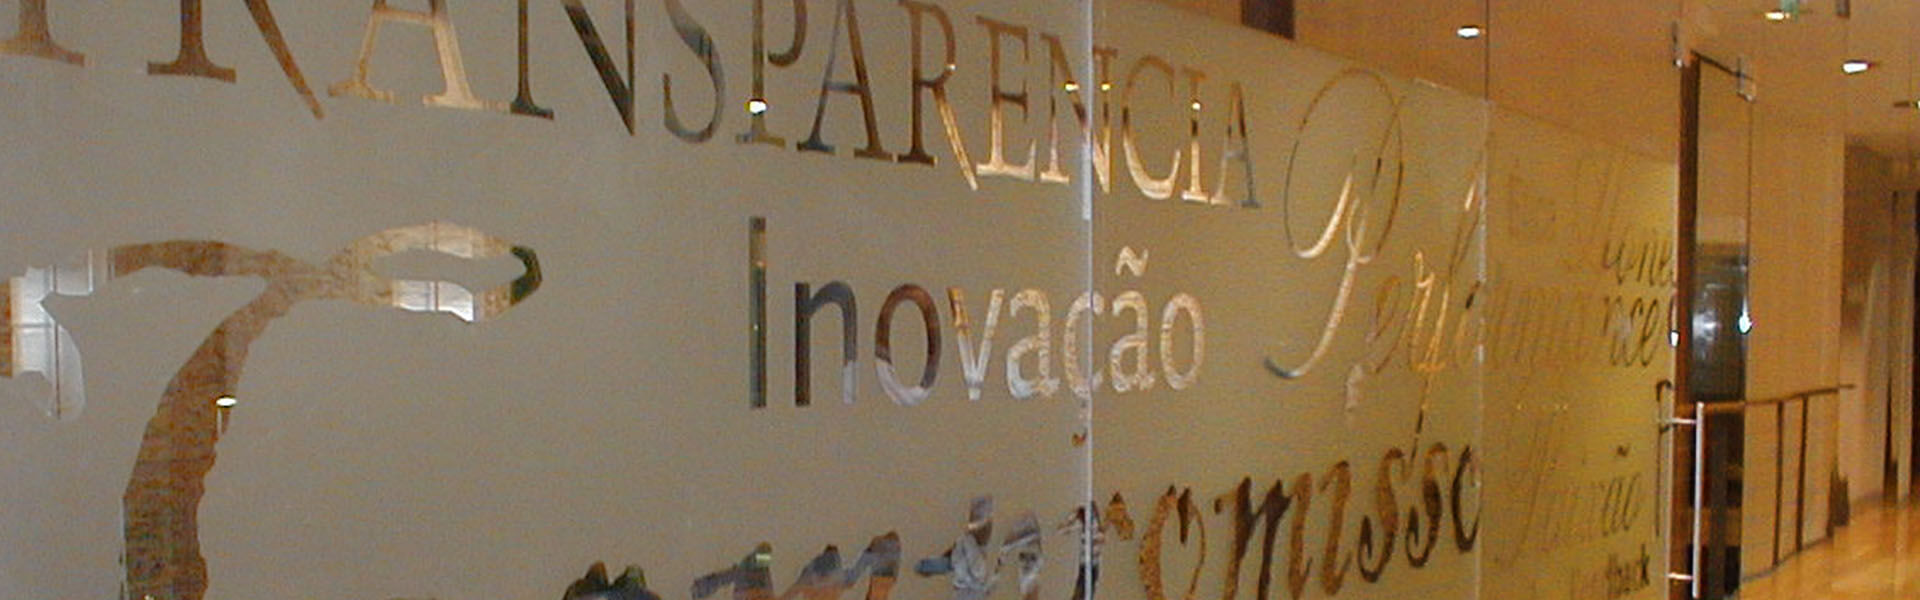 services-interior-design-banner-1920x600_0001_roche